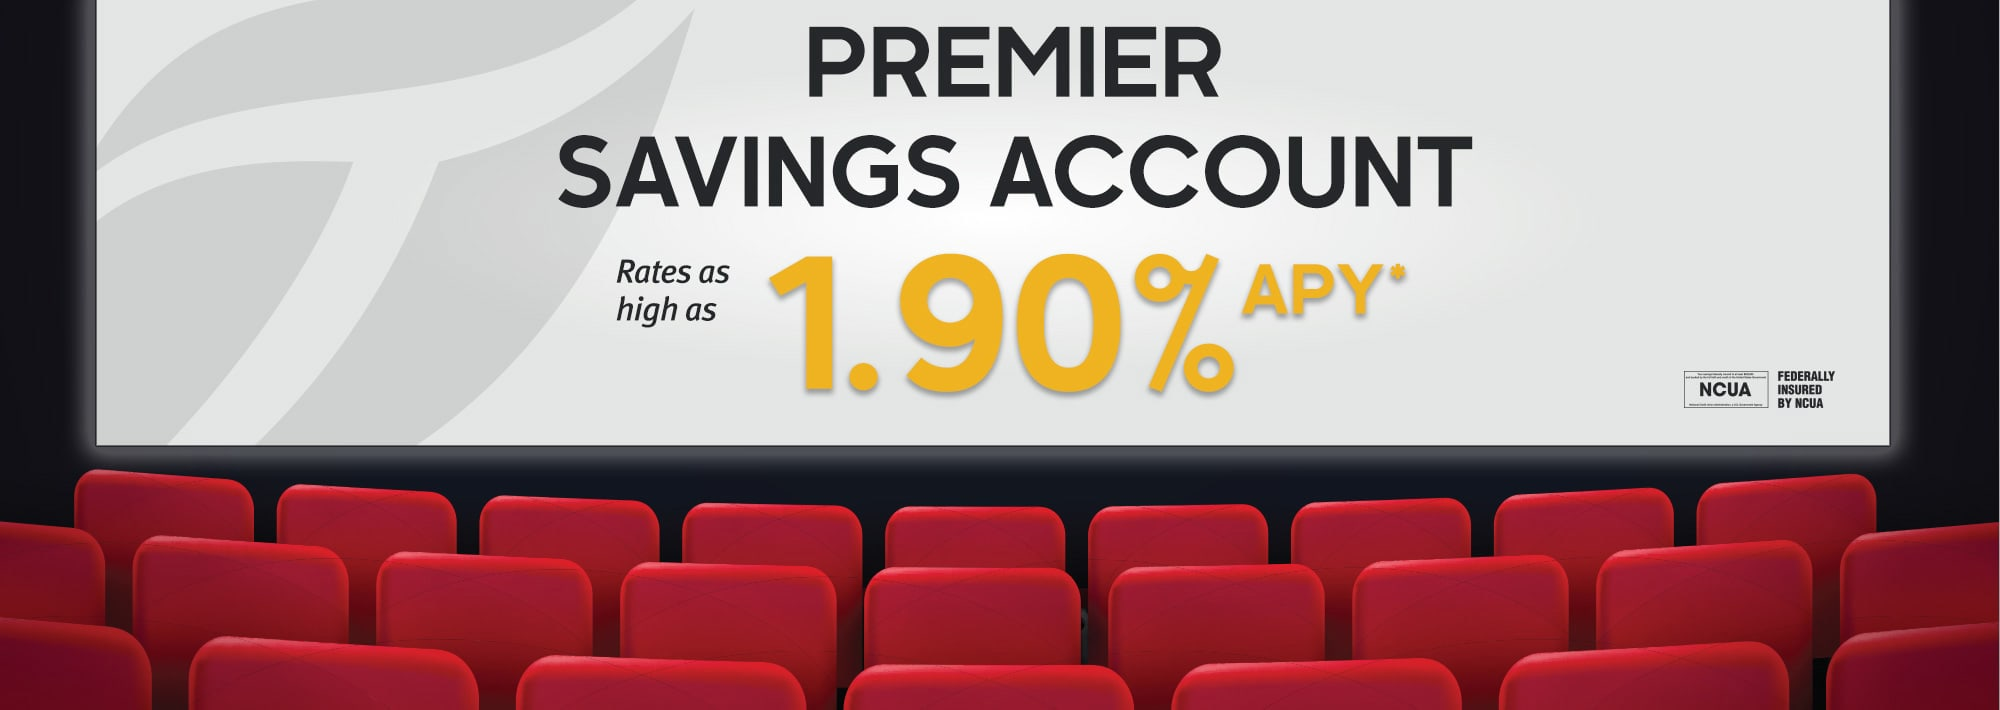 Premier Savings Account. Rates as high as 1.90% APY*